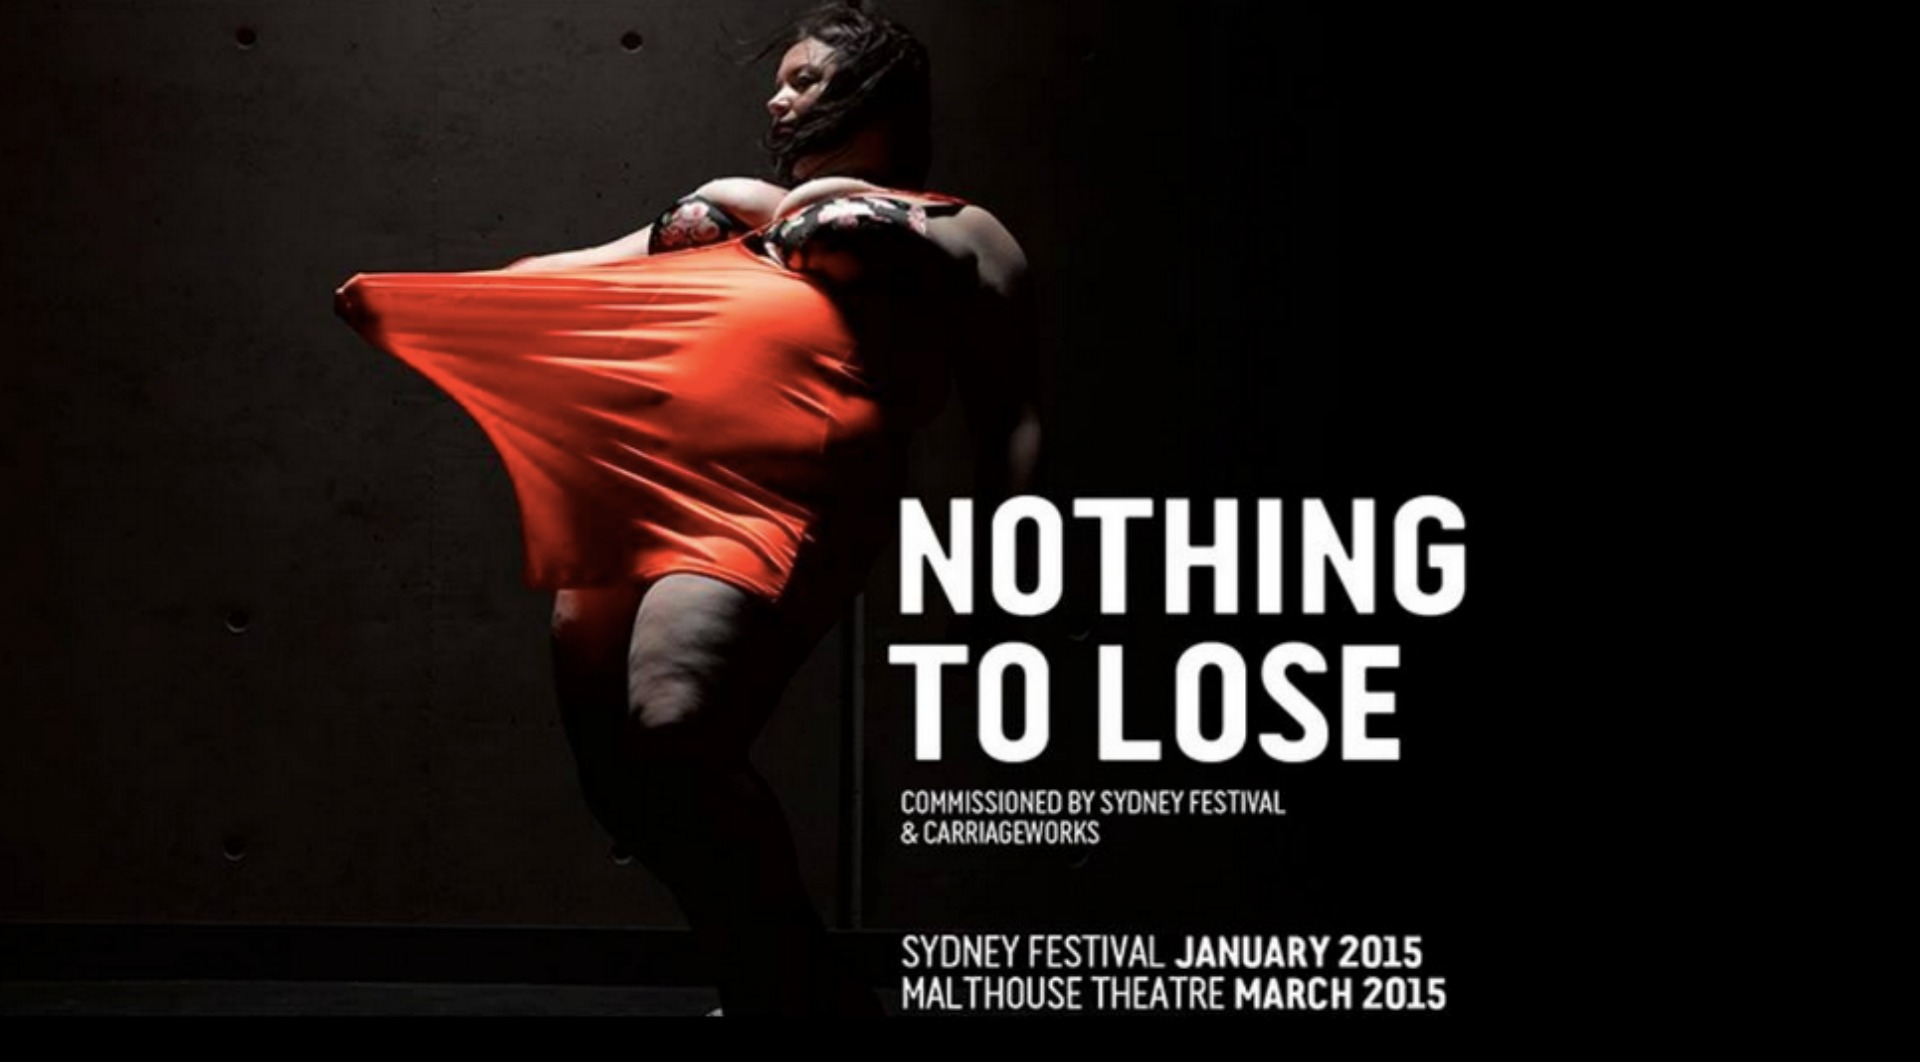 Nothing to Lose is part of the Sydney Festival 2015